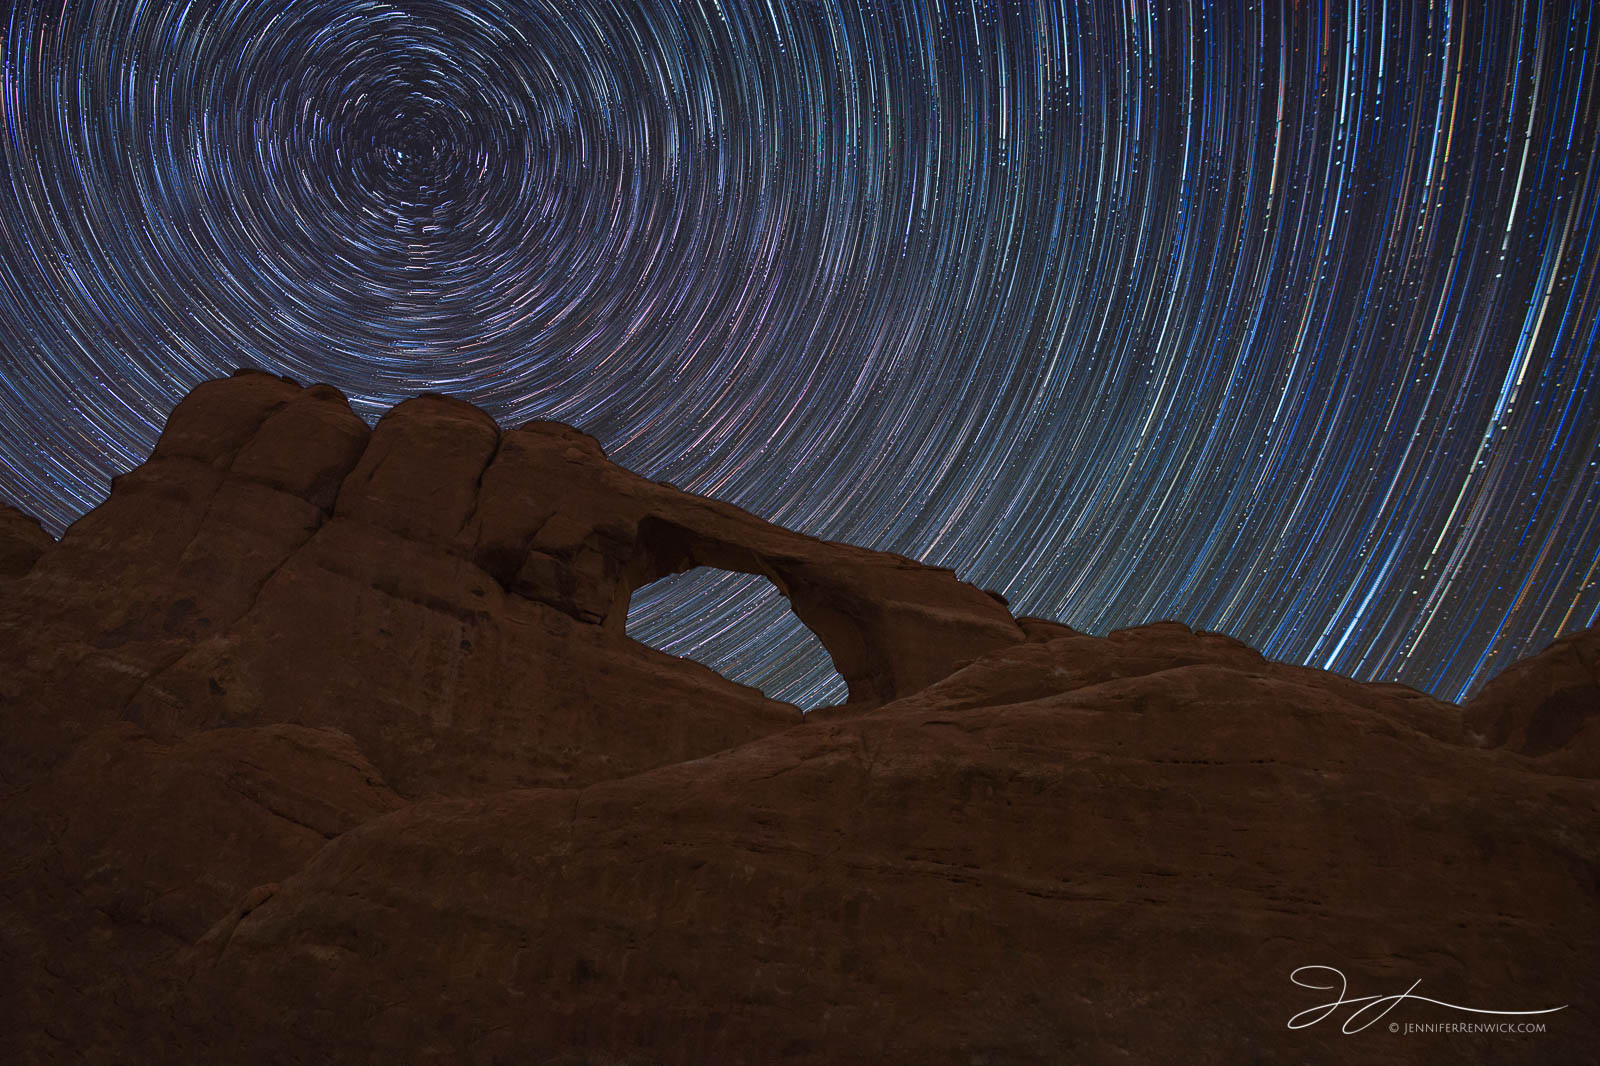 Colorful star trails form a vortex above Skyline Arch in Arches National Park.